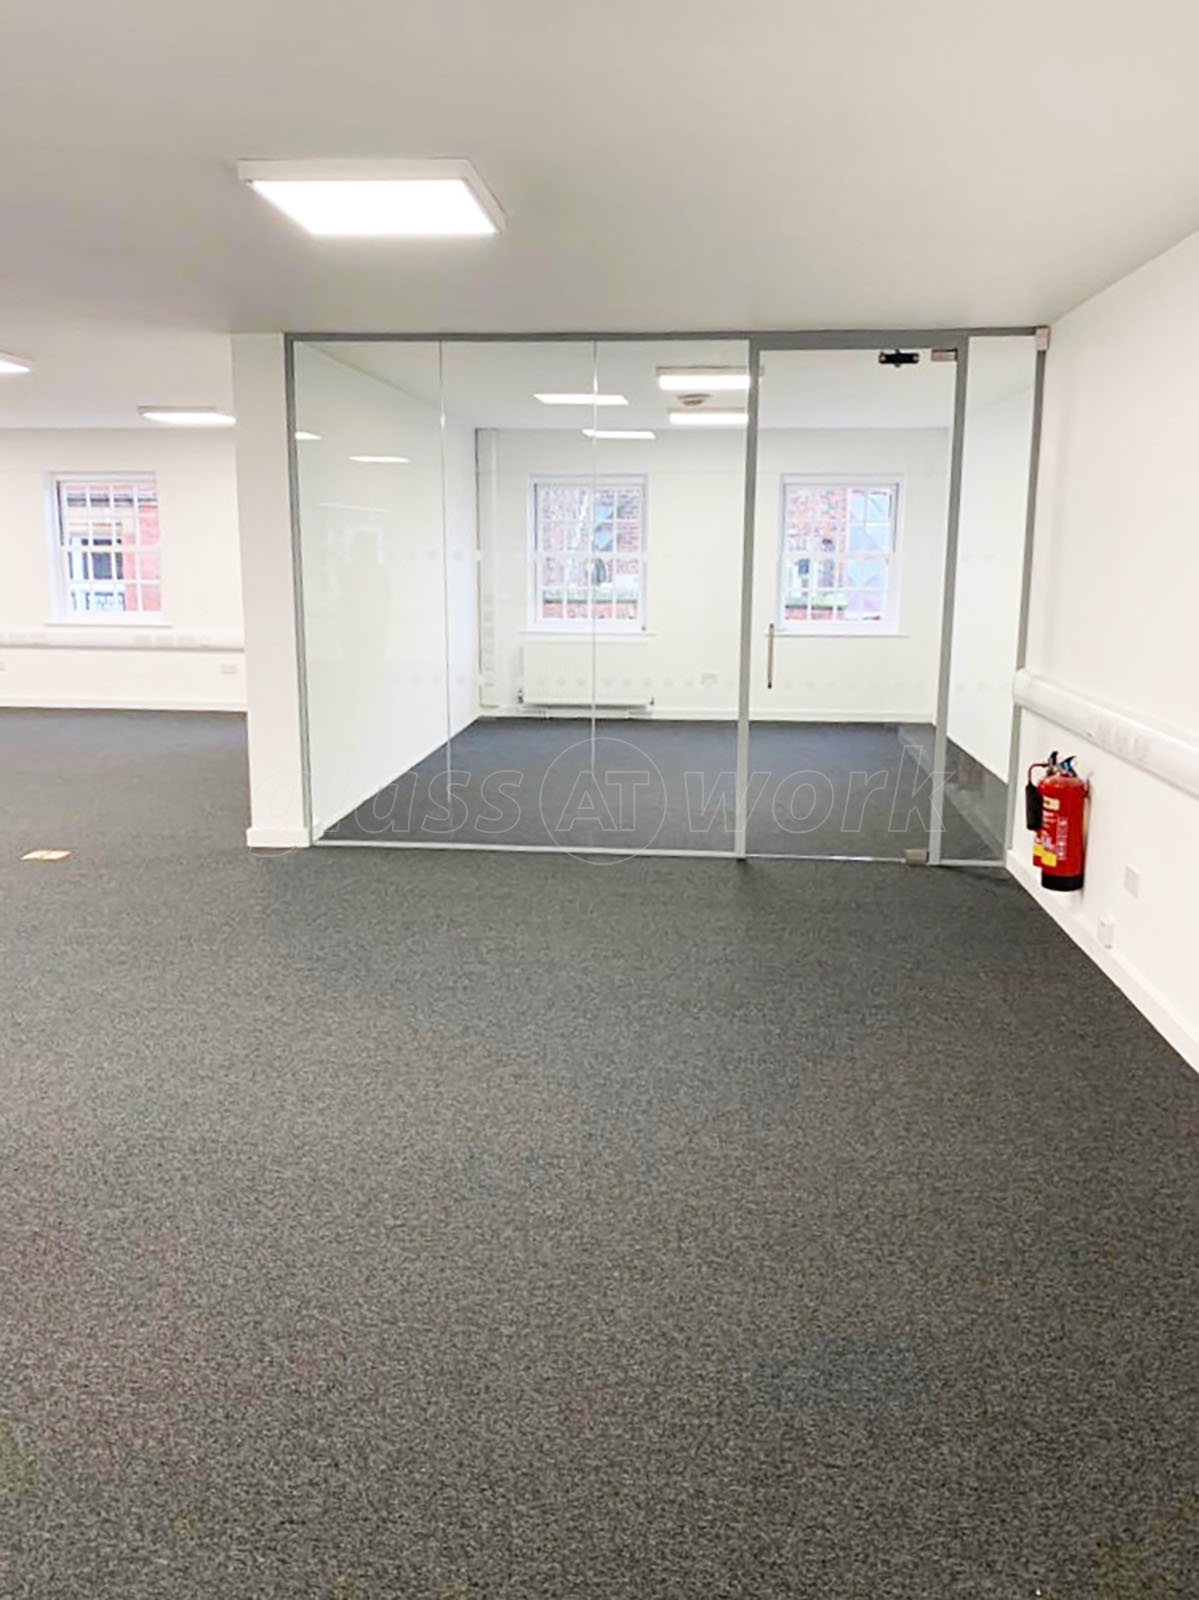 Glass Partitions At Stonegrave Properties Ltd York North Yorkshire Small Glazed Office Divider With Glass Door